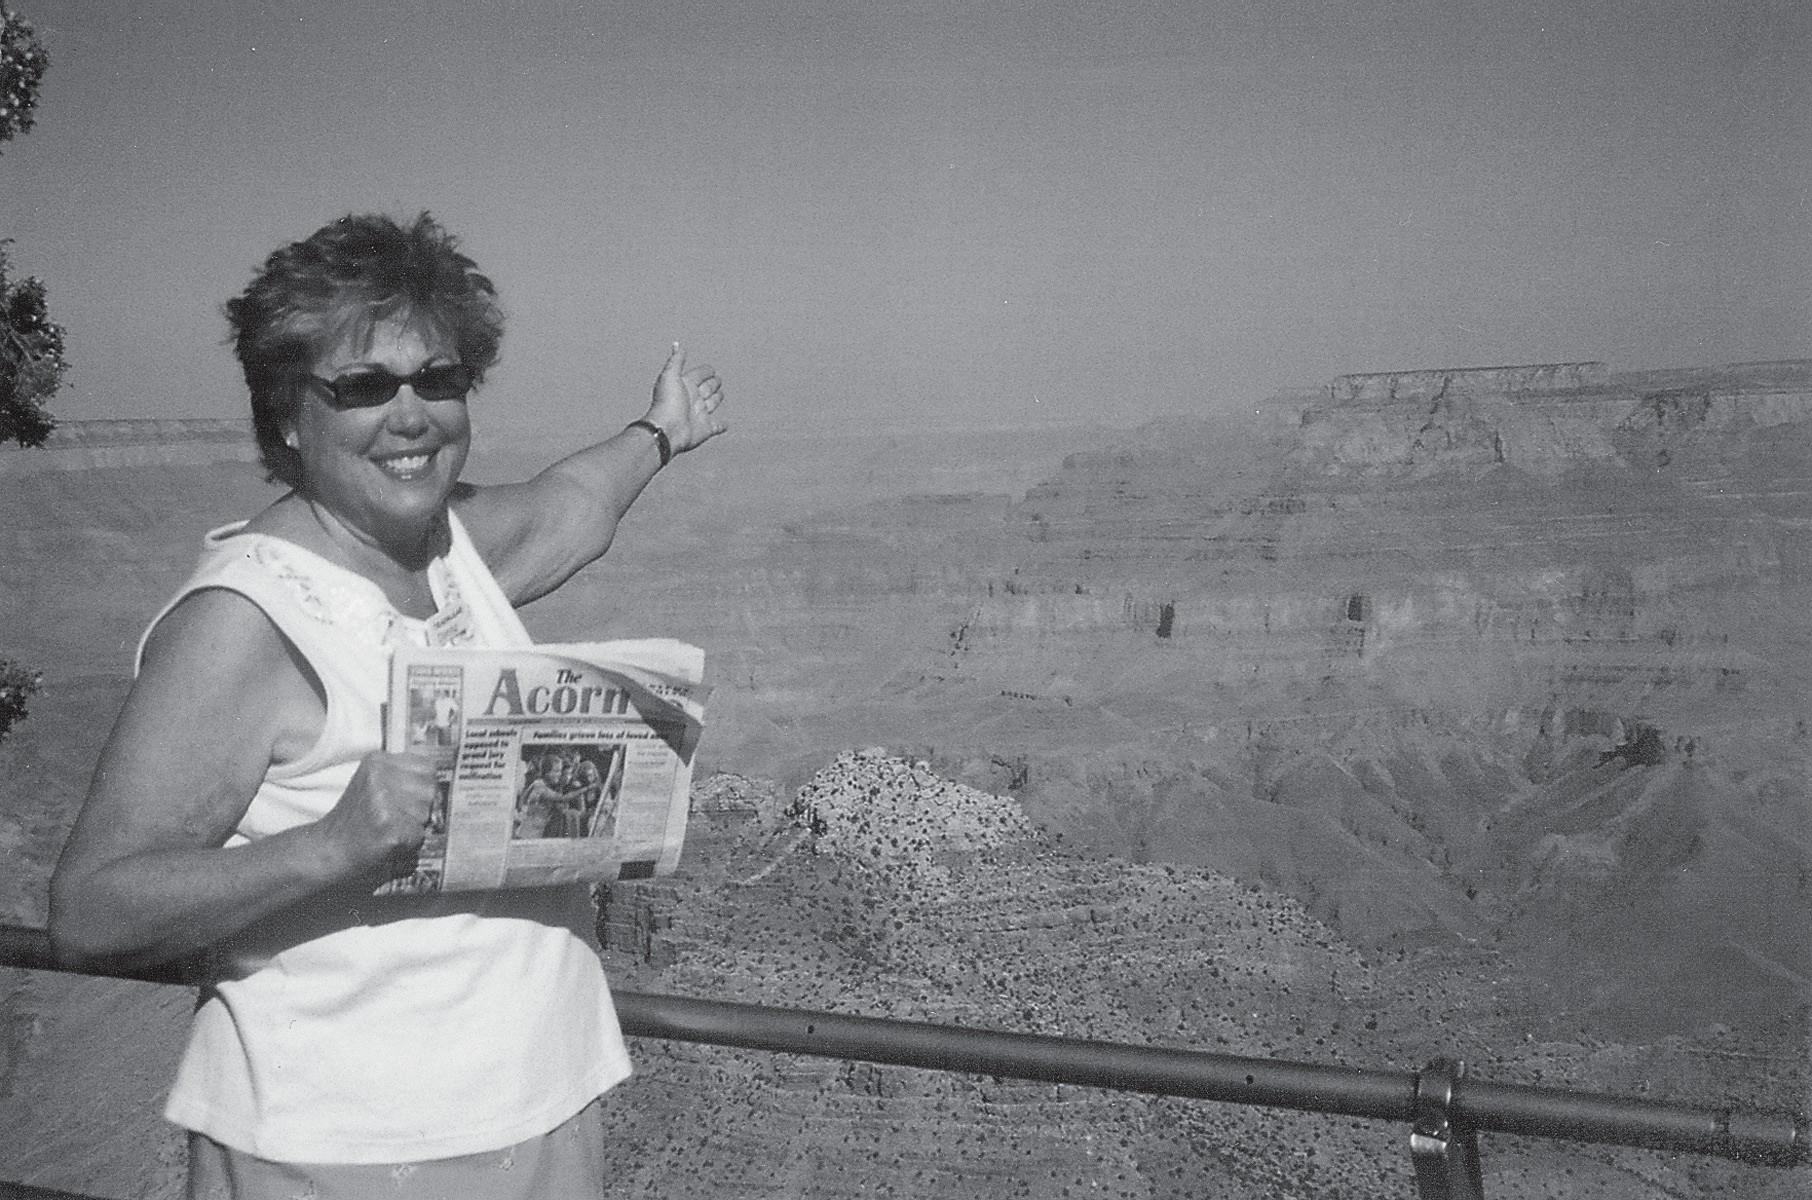 ISN'T  THIS  GRAND?—Donna  Cook  of  Calabasas  is  awed  by  he sweeping vistas of the Grand Canyon. She points the way down.